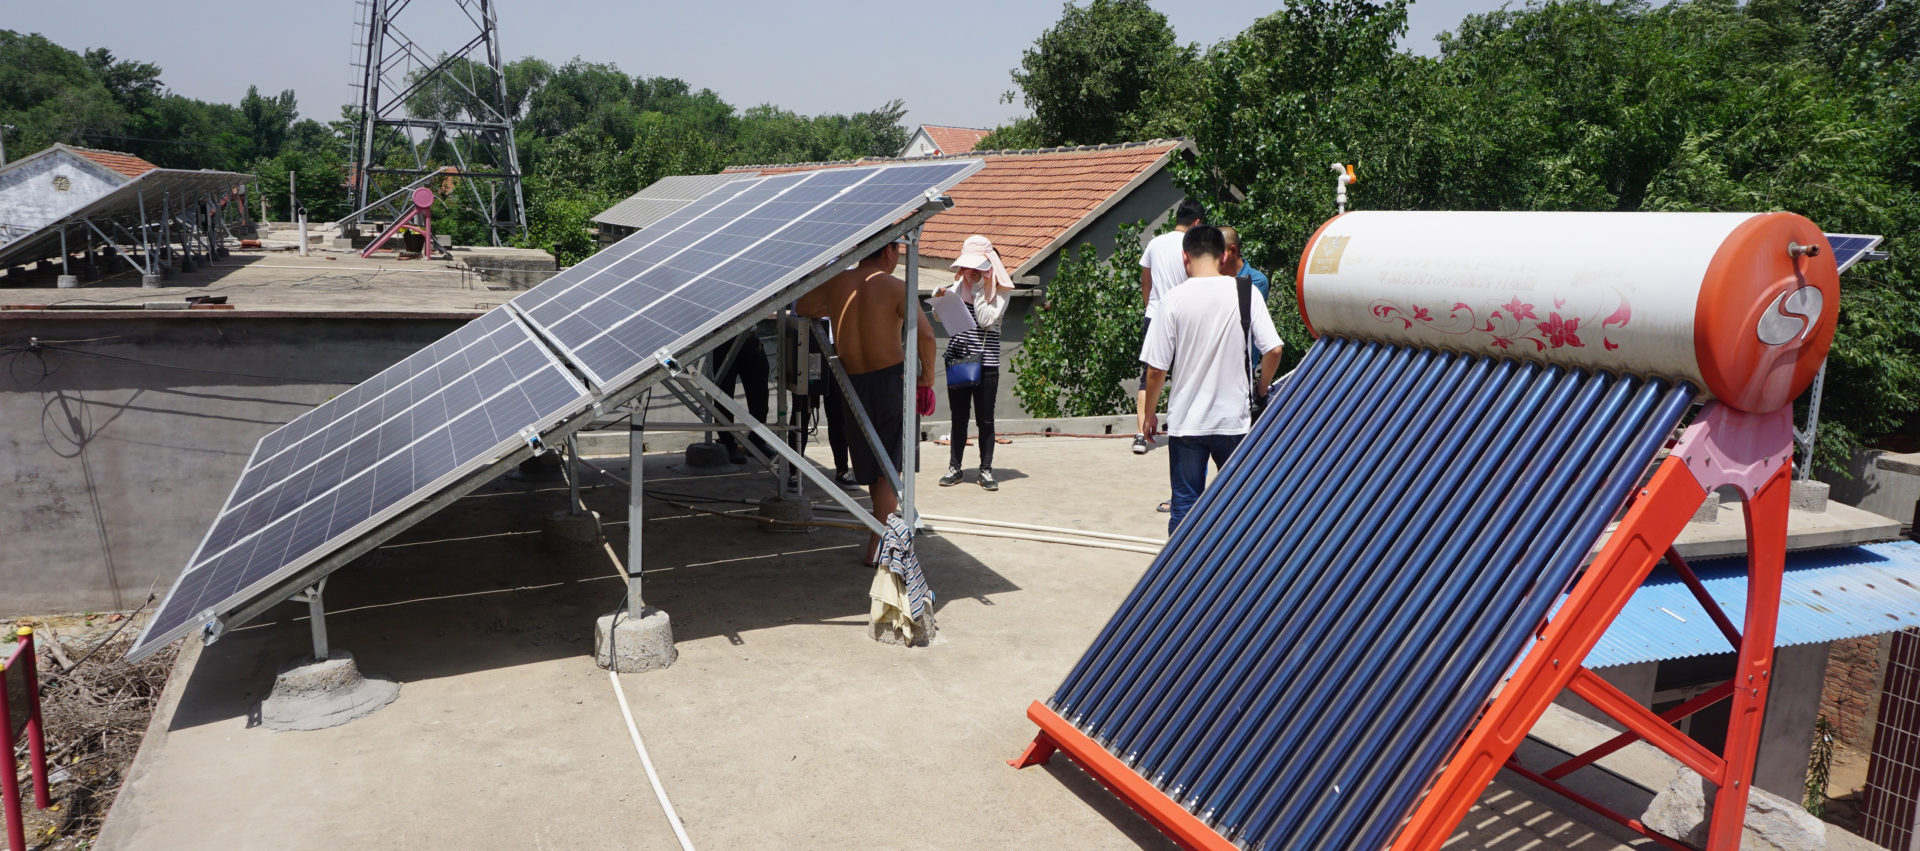 Why Does China Use Rooftop Solar Pv Technology